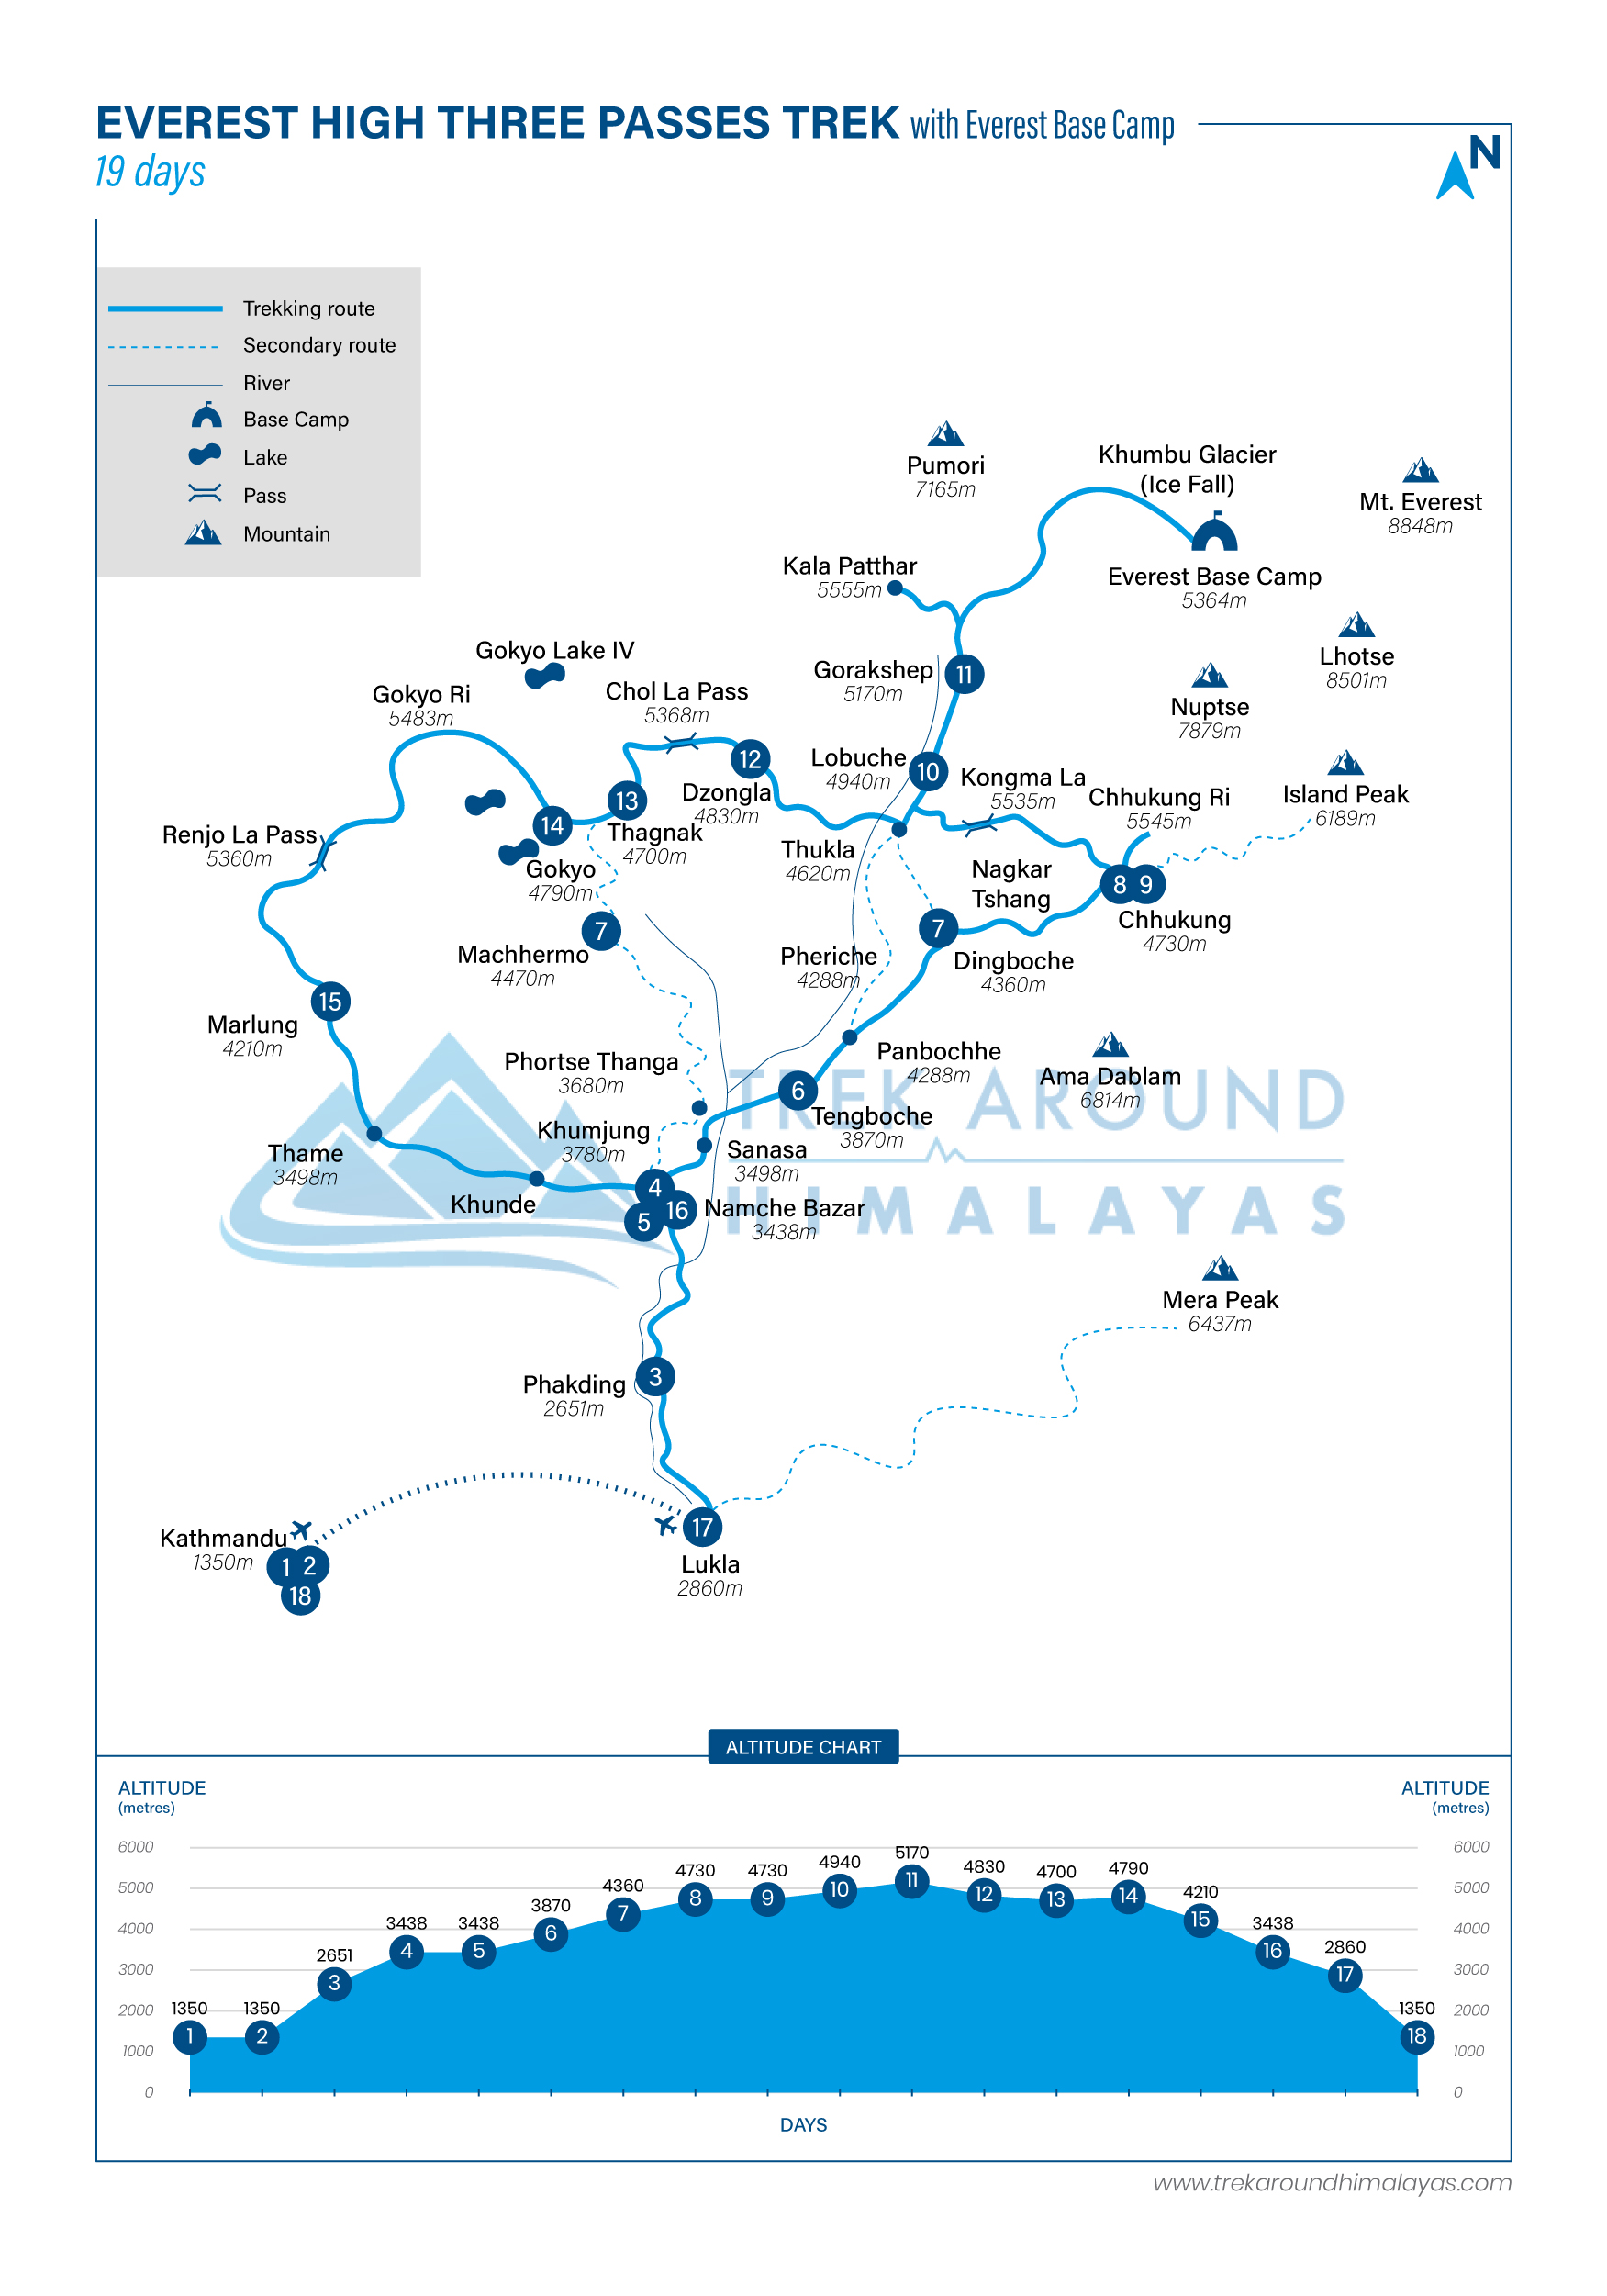 Route Map for Everest high 3 passes Trek with Everest Base Camp | Adventure Altitude